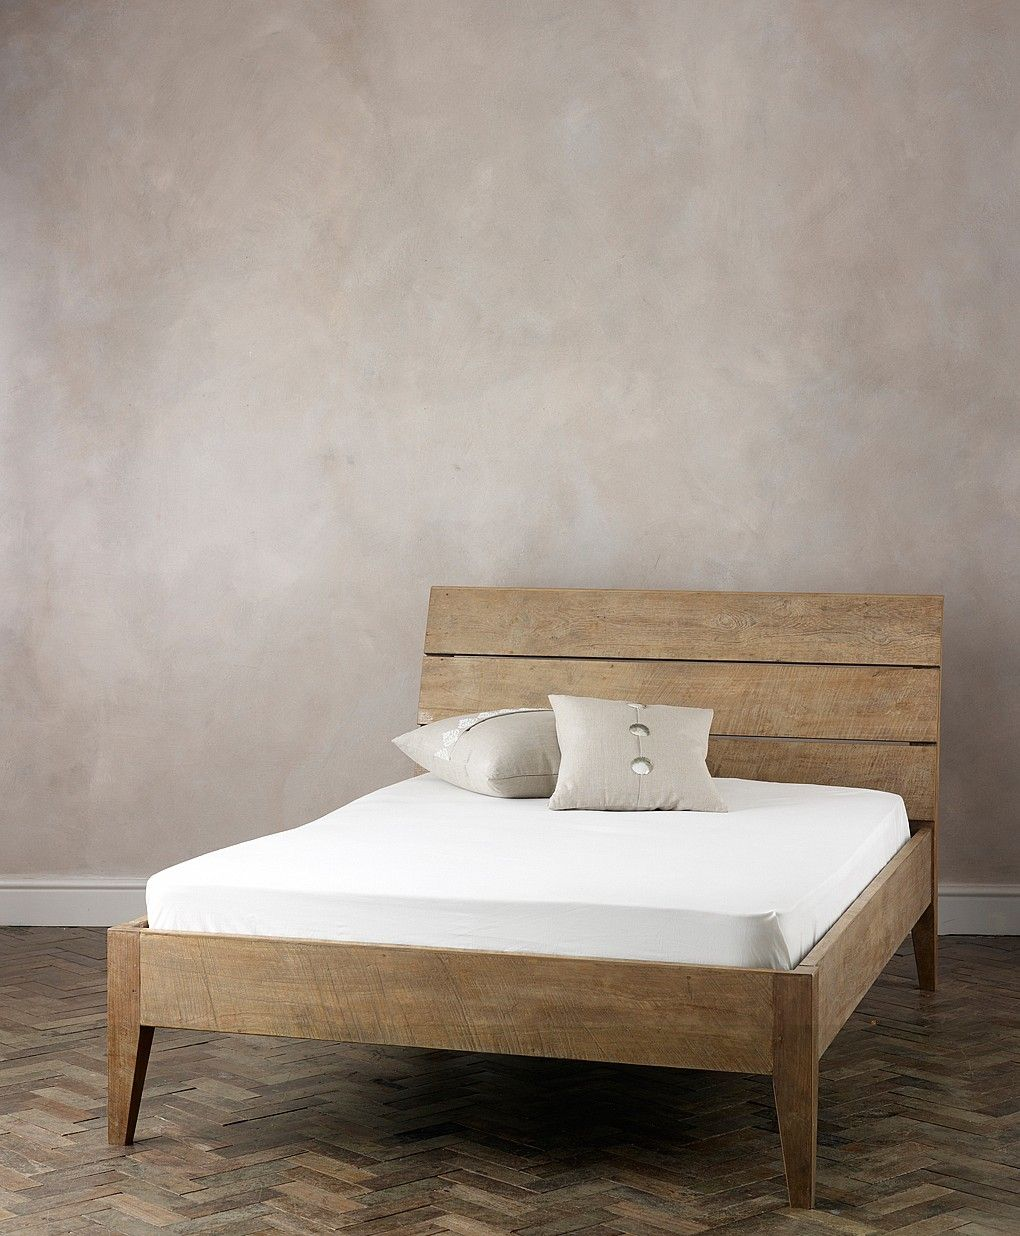 Sumatra Wooden Bed From Lombok Wooden Bed Diy Sofa Bed Furniture